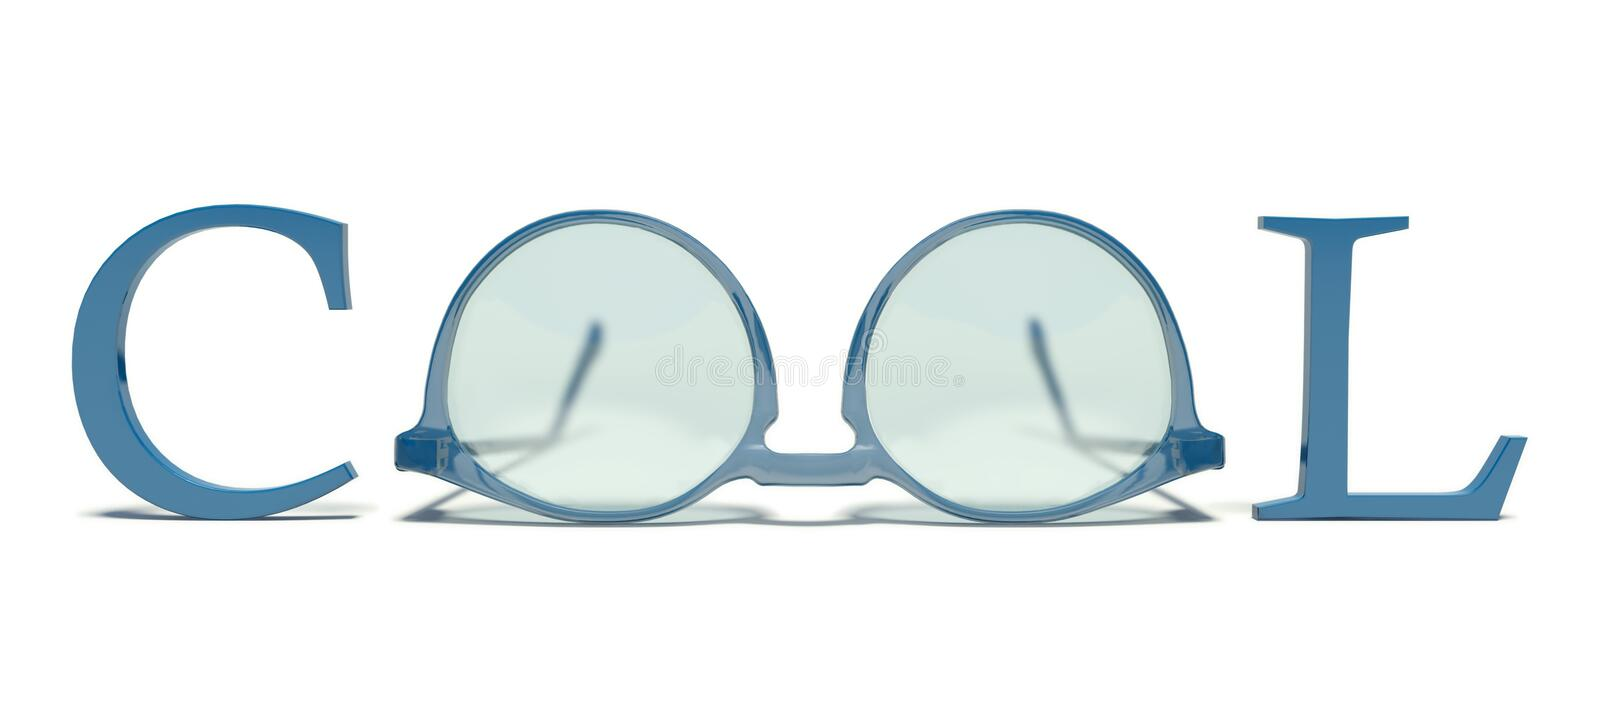 Cool glasses stock illustration